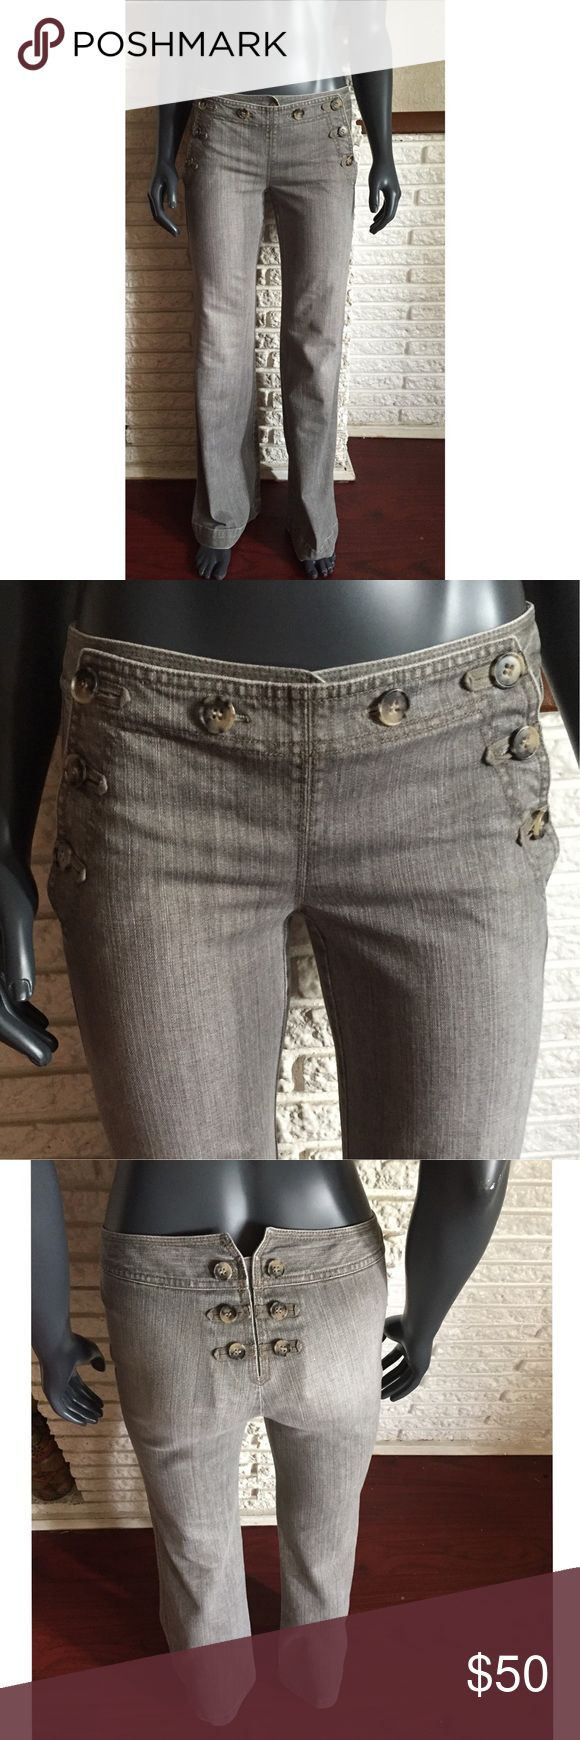 ~Gray Theory Jeans~ High waist wide leg jeans by Theory. Gray lightly stonewashed jeans feature multiple buttons on the front and back. The leg gently tapers out to a wide hem. These hippie style pants are both effortless and unique to wear. Looks great with a wide brim hat and wedge heels 👒👡 Theory Jeans Flare & Wide Leg